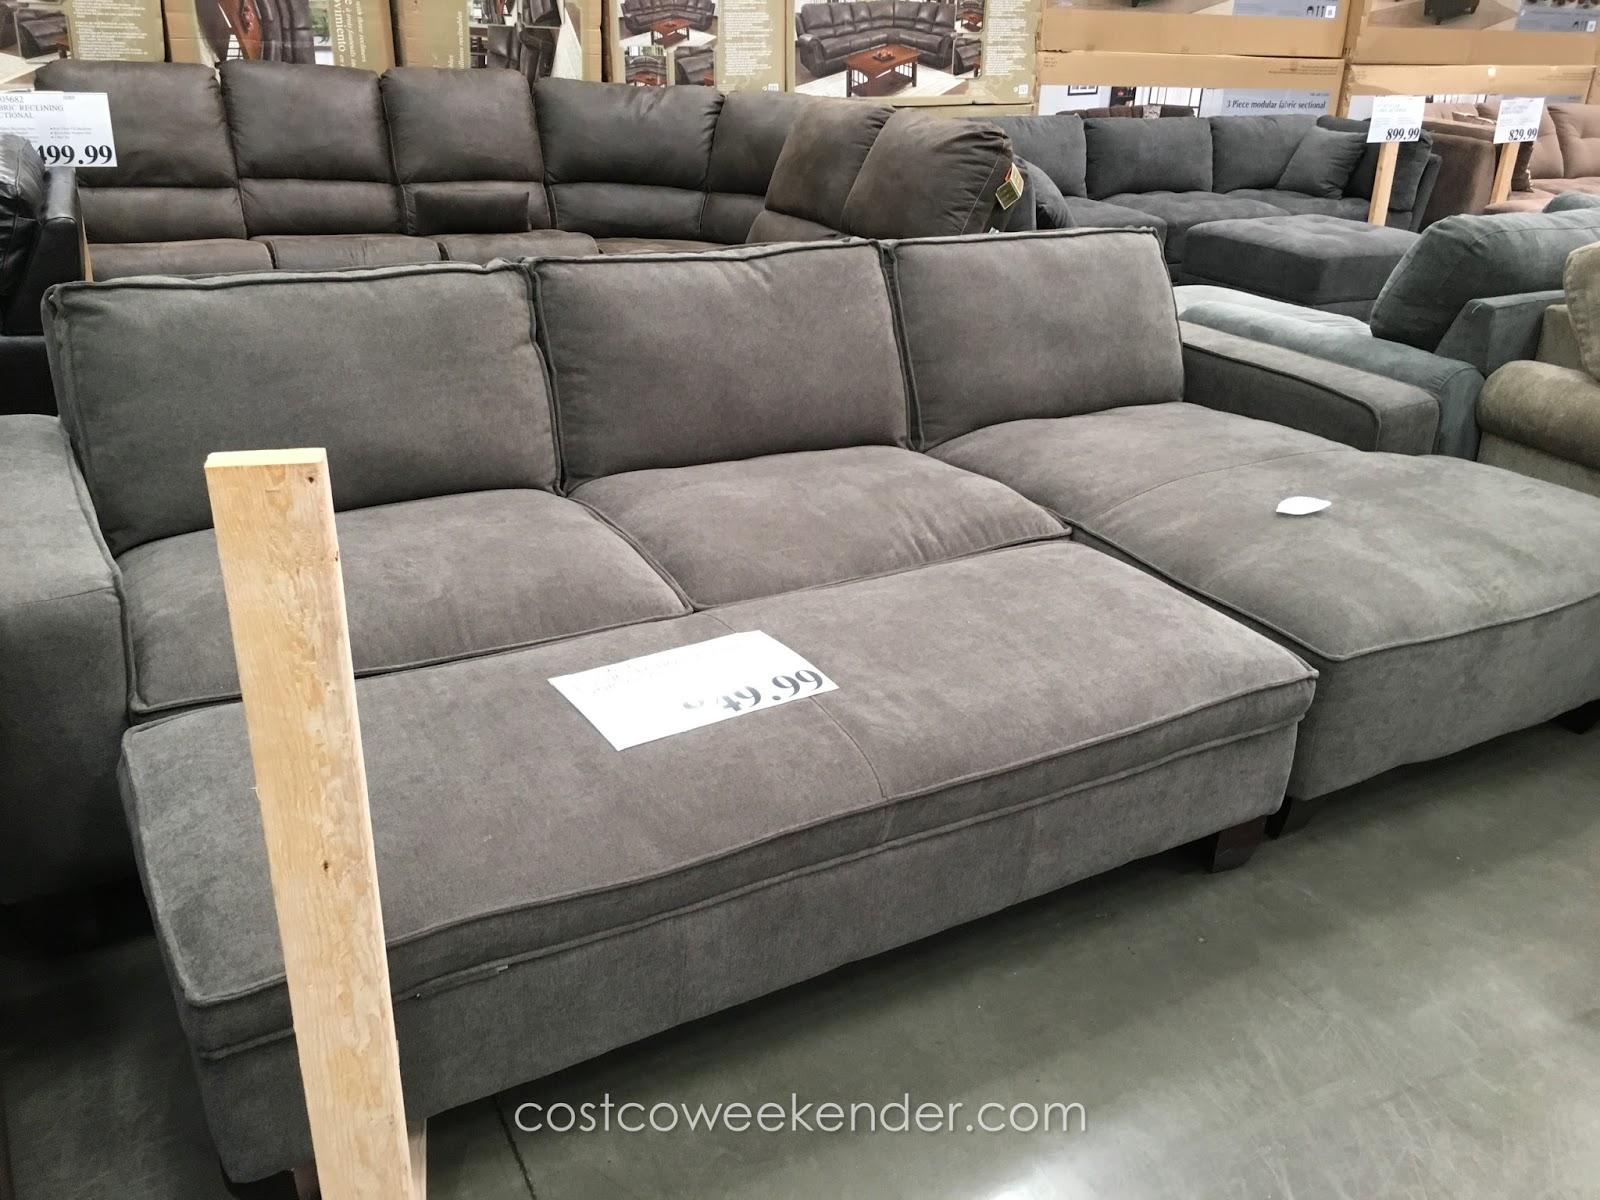 Chaise sectional sofa with storage ottoman costco weekender for Chaise lounge costco